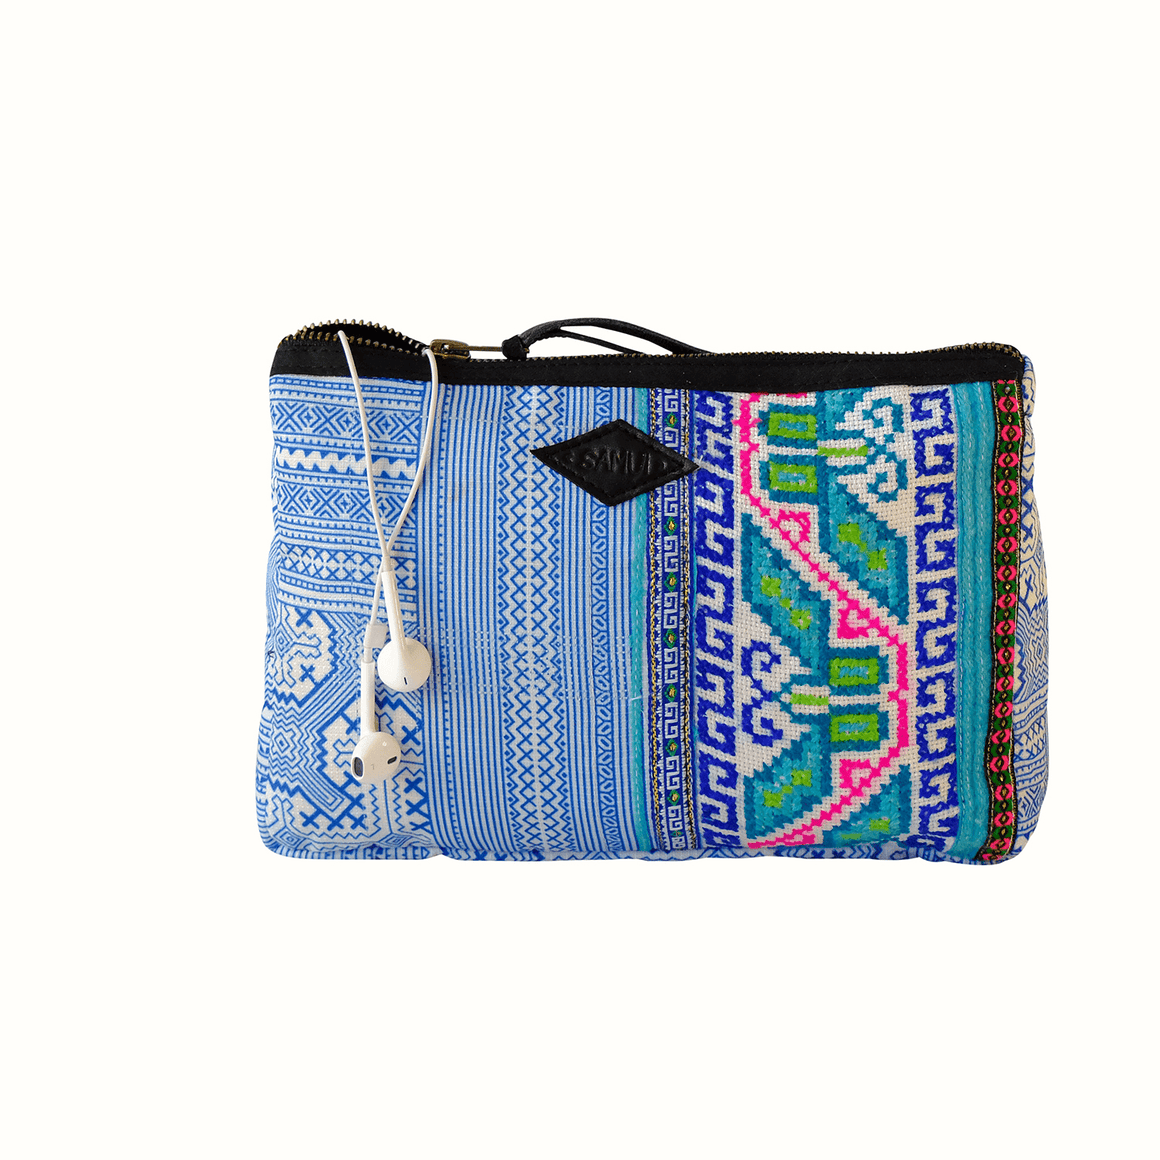 Samui Bags Ocean Breeze Pouch Handmade Thai Bag